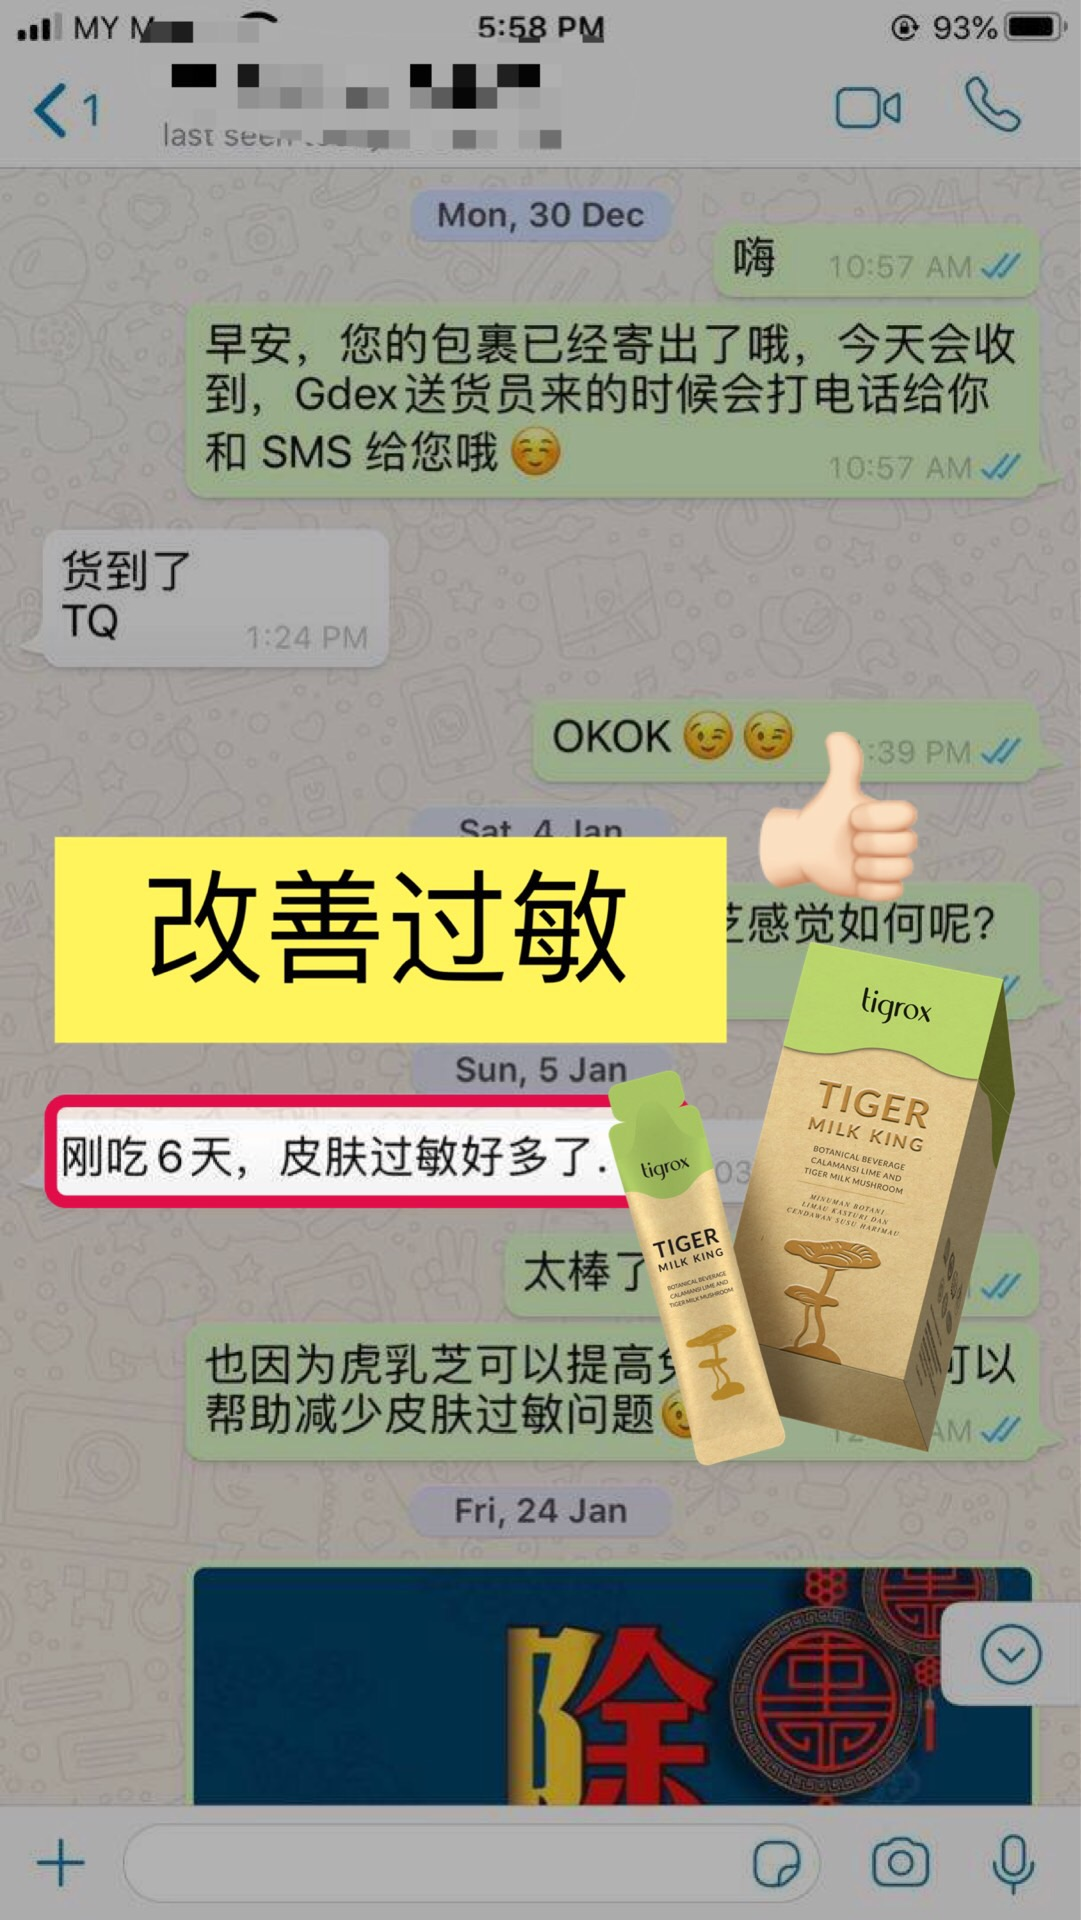 Wellous Tigrox Tiger Milk King Review Testimonial MyVpsGroup-9